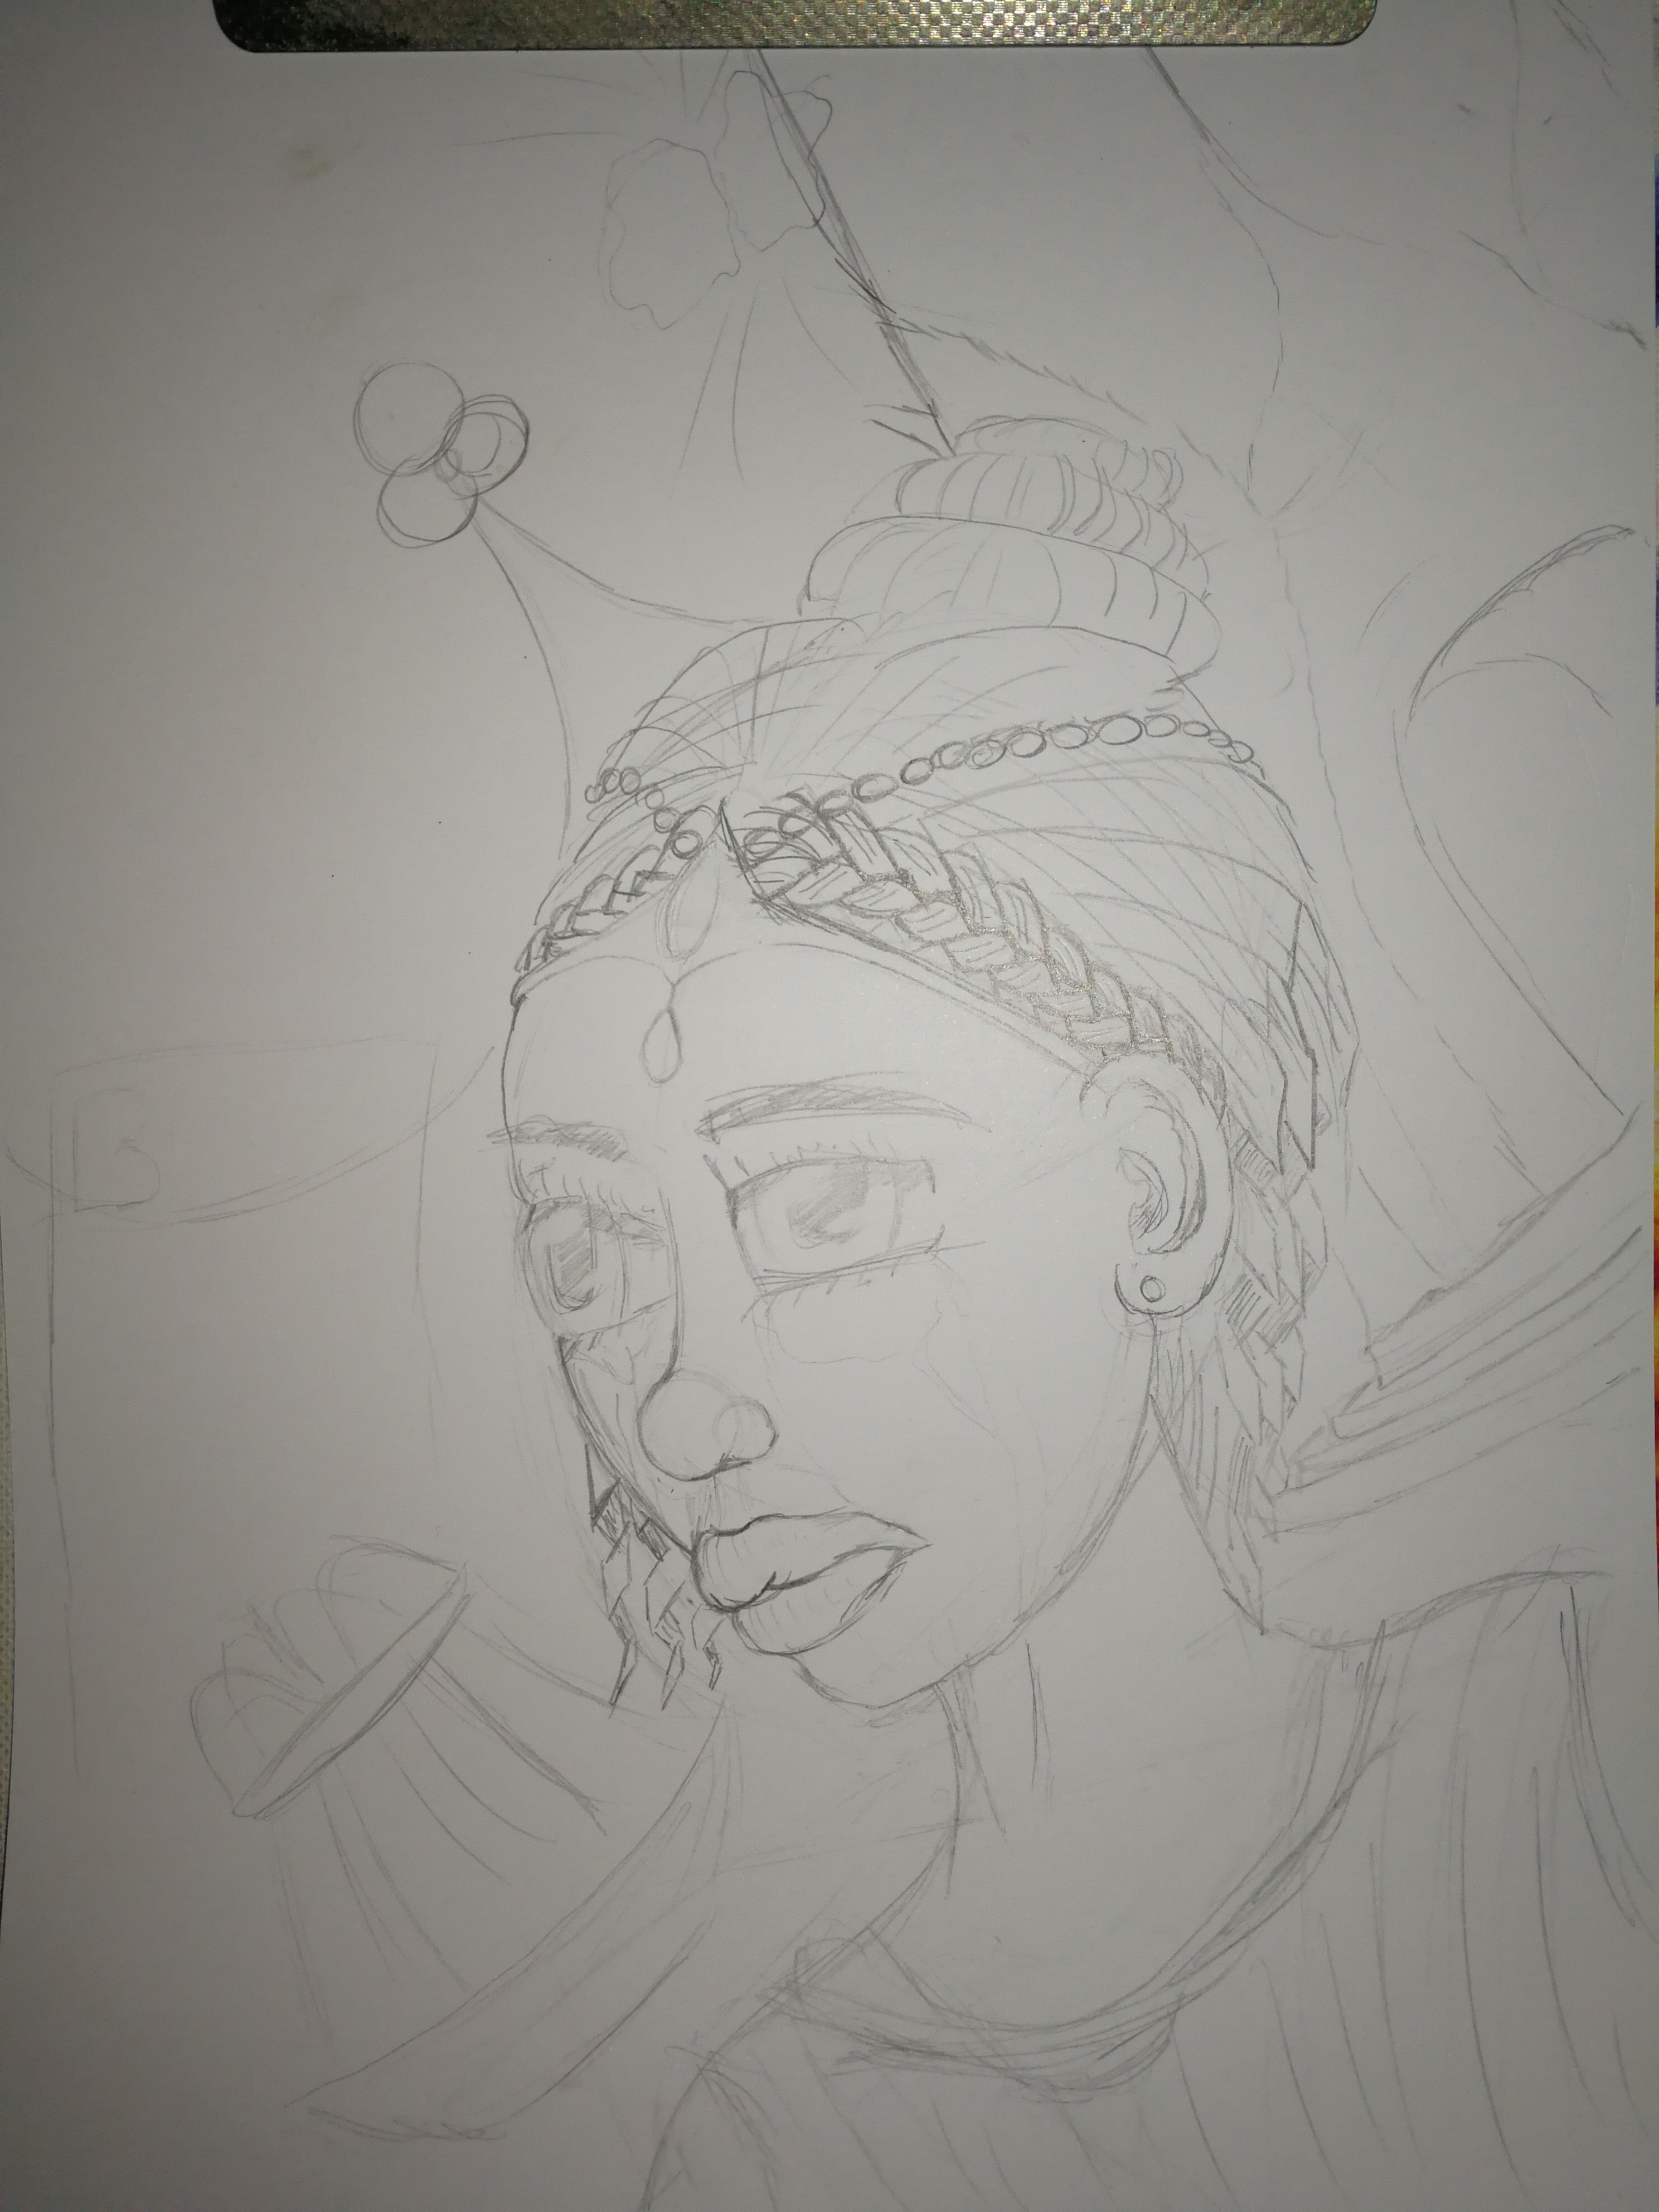 6437210_149830843311_Childlikeempress-sketch.jpg